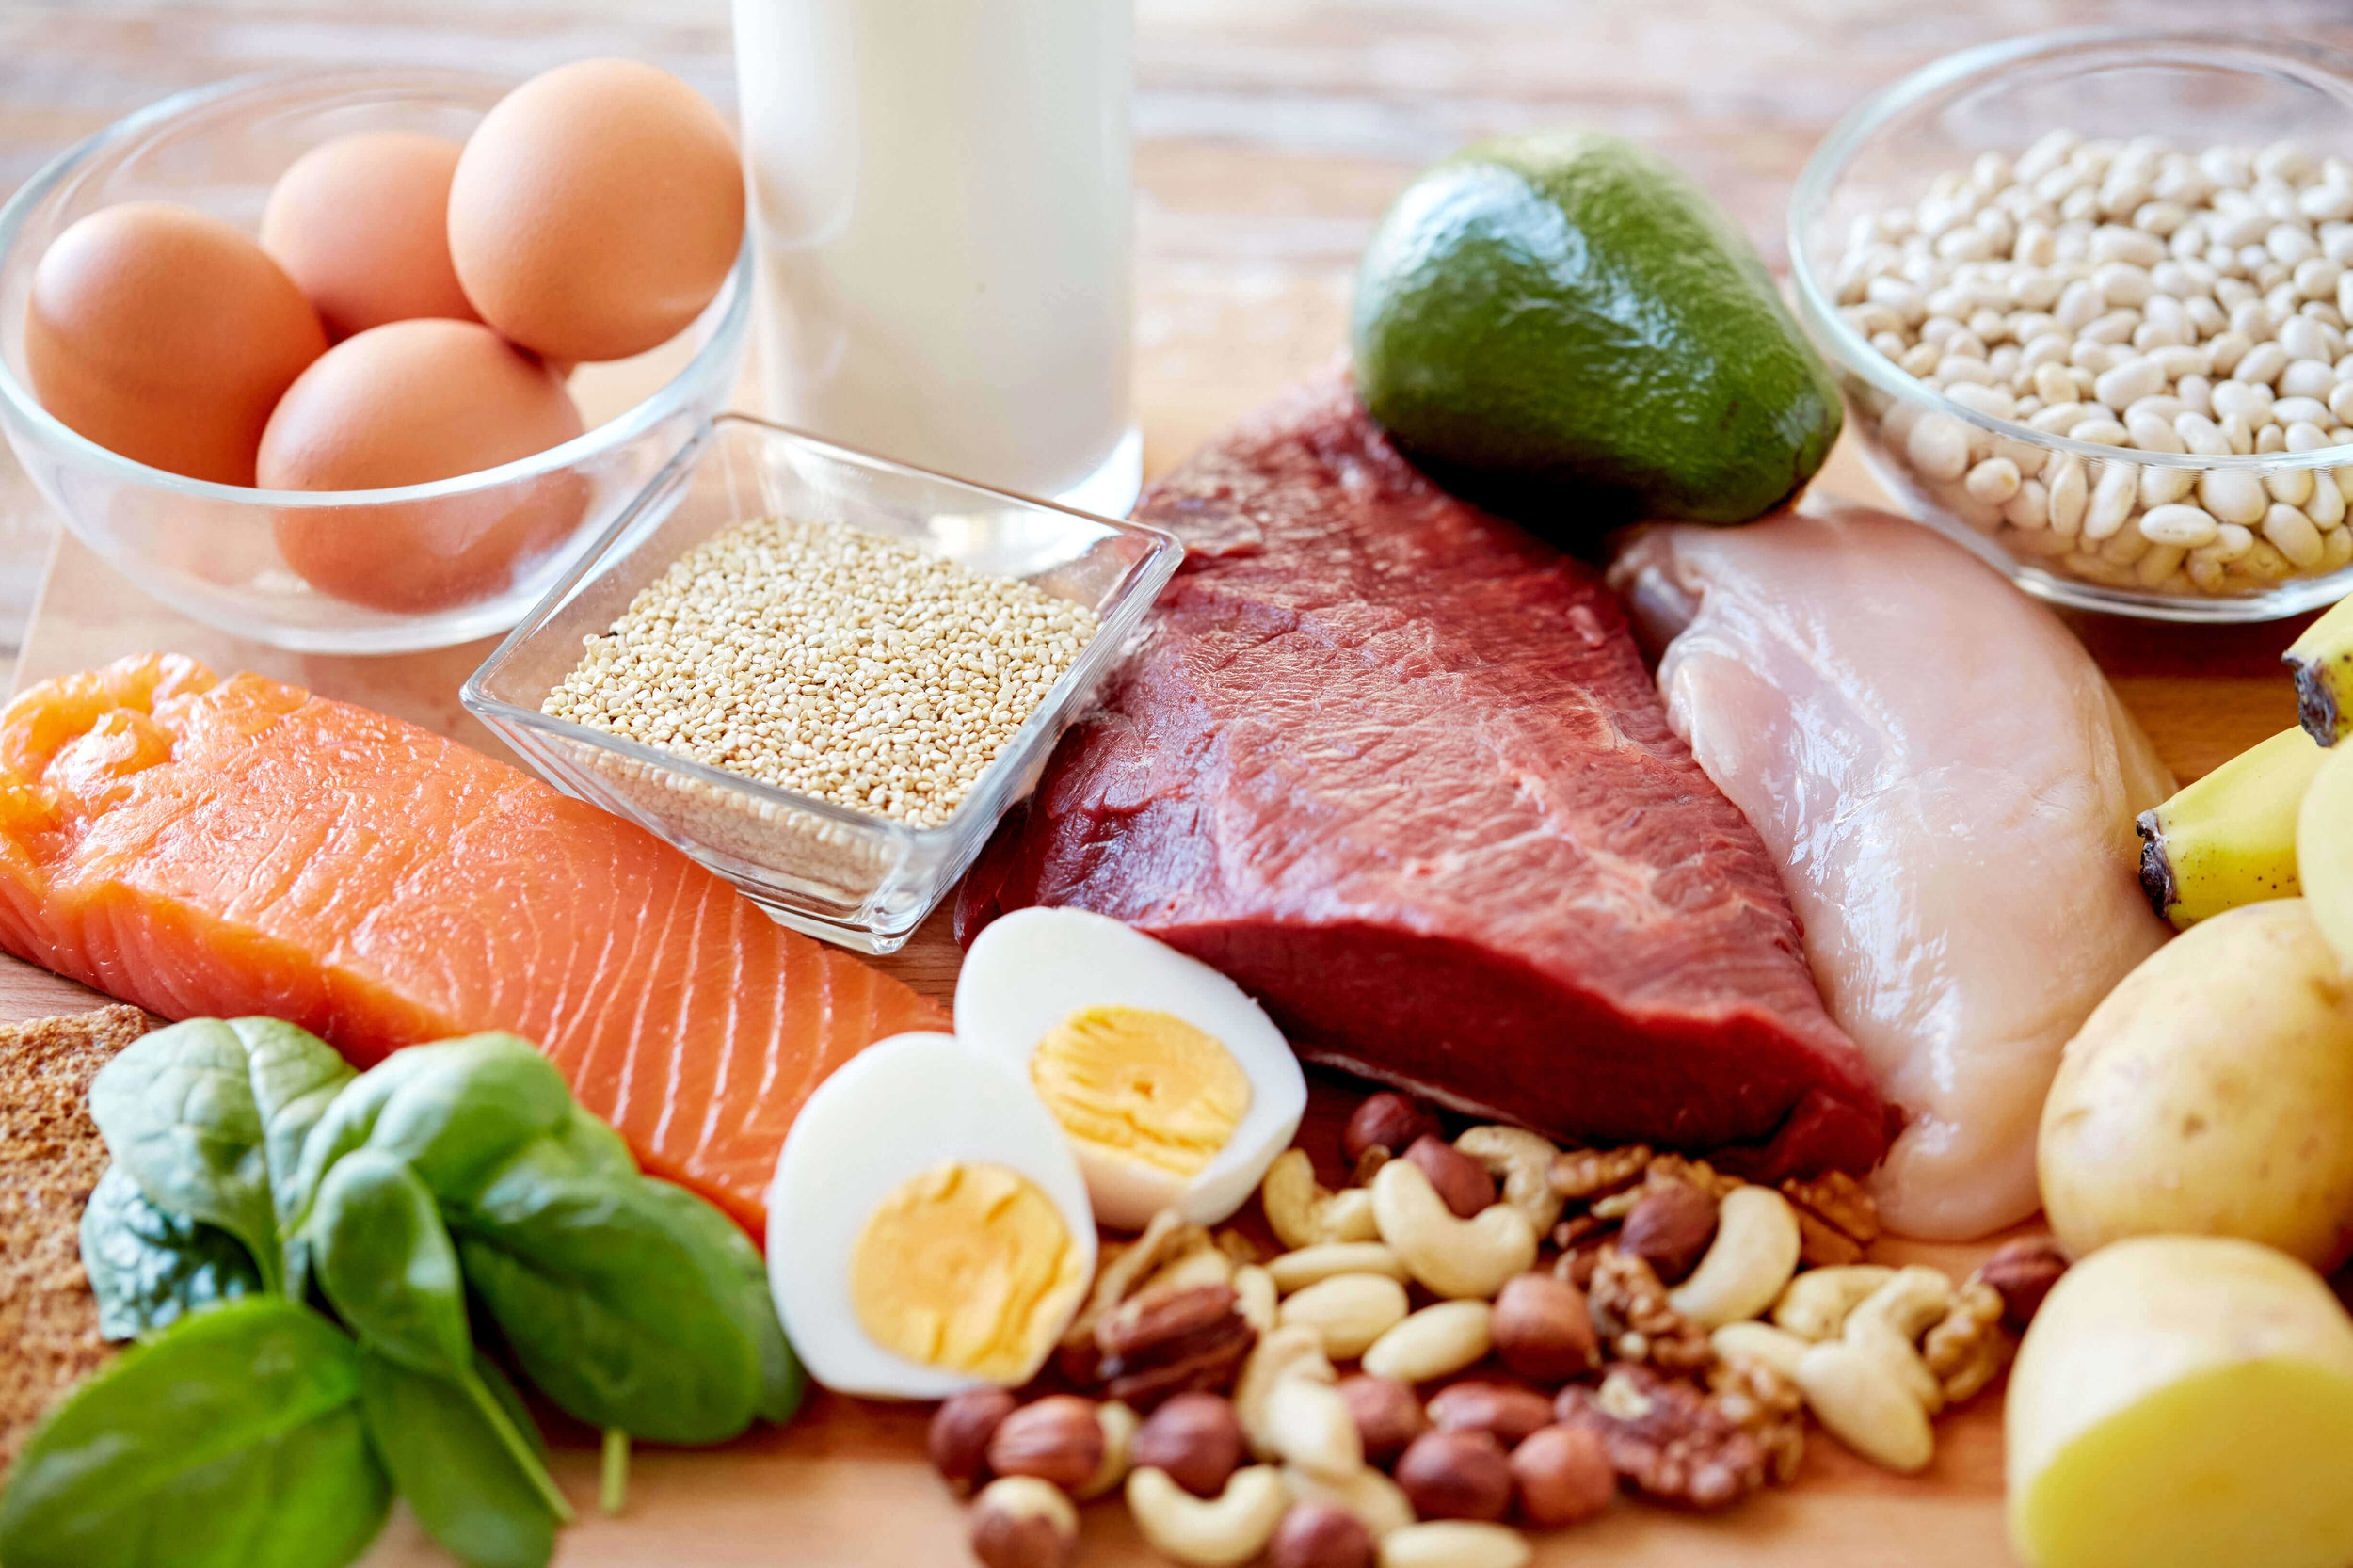 keto diet protein fat healthy meat vegetables low card